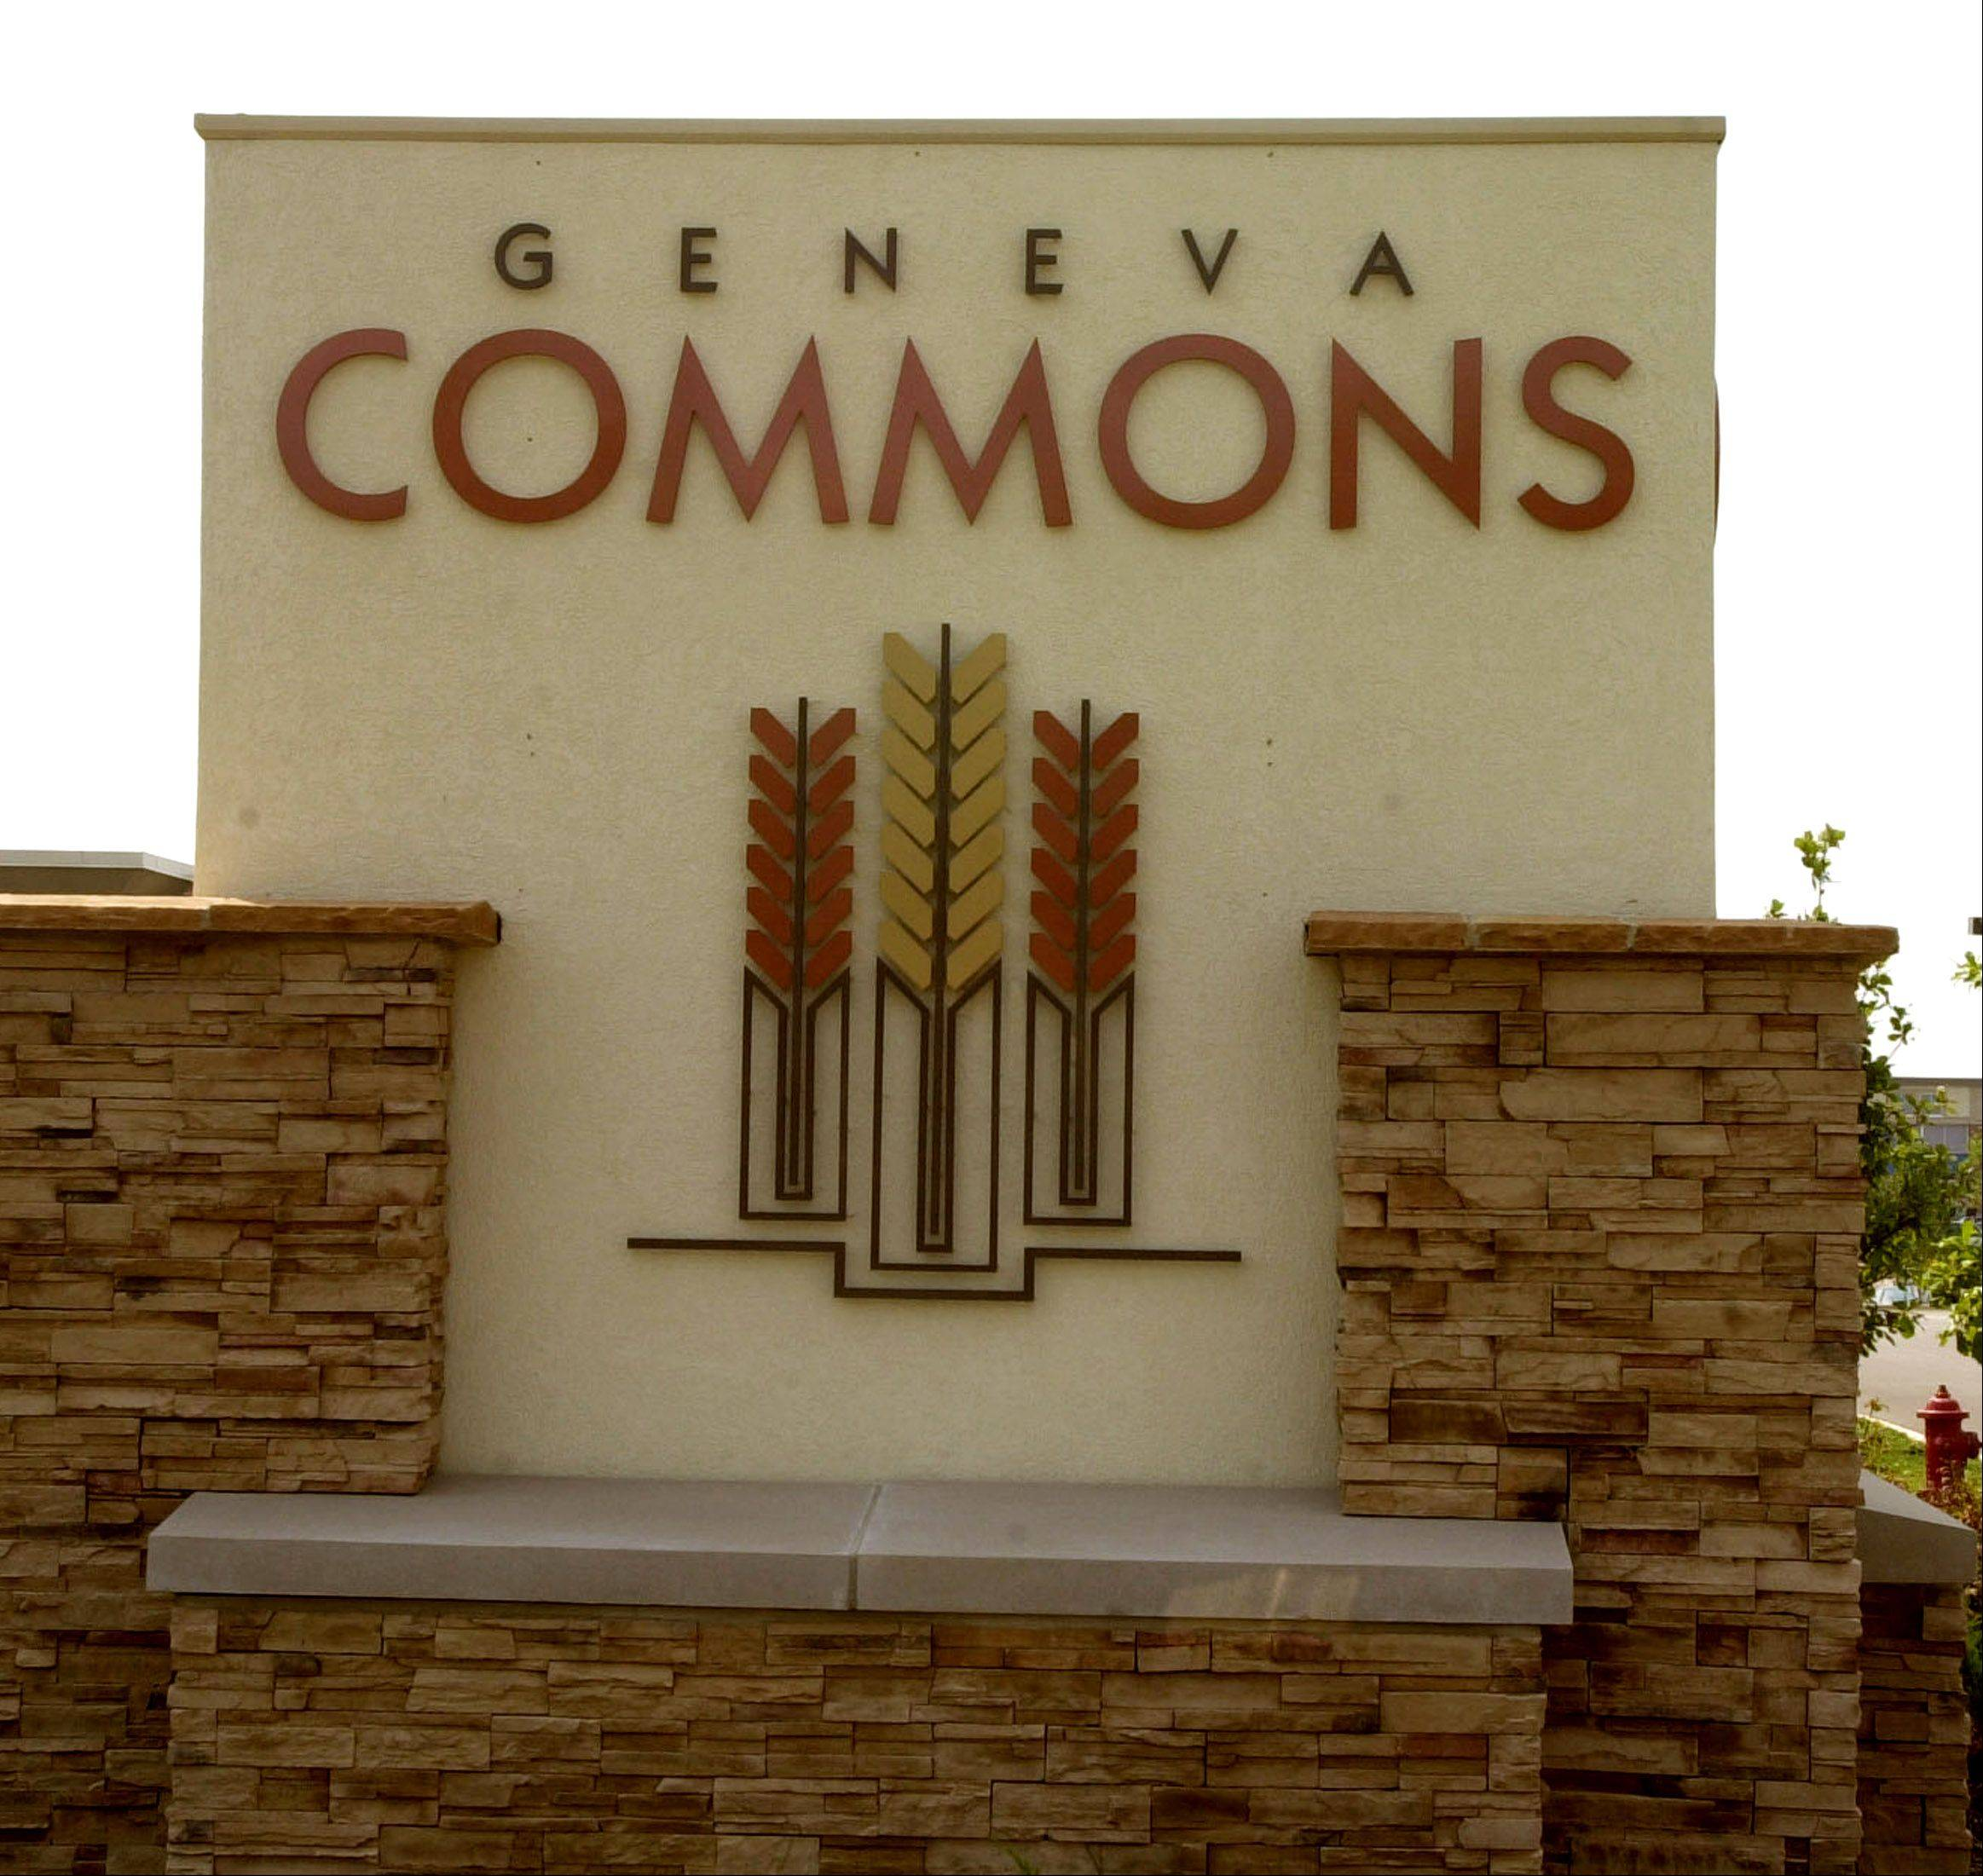 The owners of the Geneva Commons shopping center have defaulted on a $40.4 million loan, Crain's Chicago Business reported Friday.